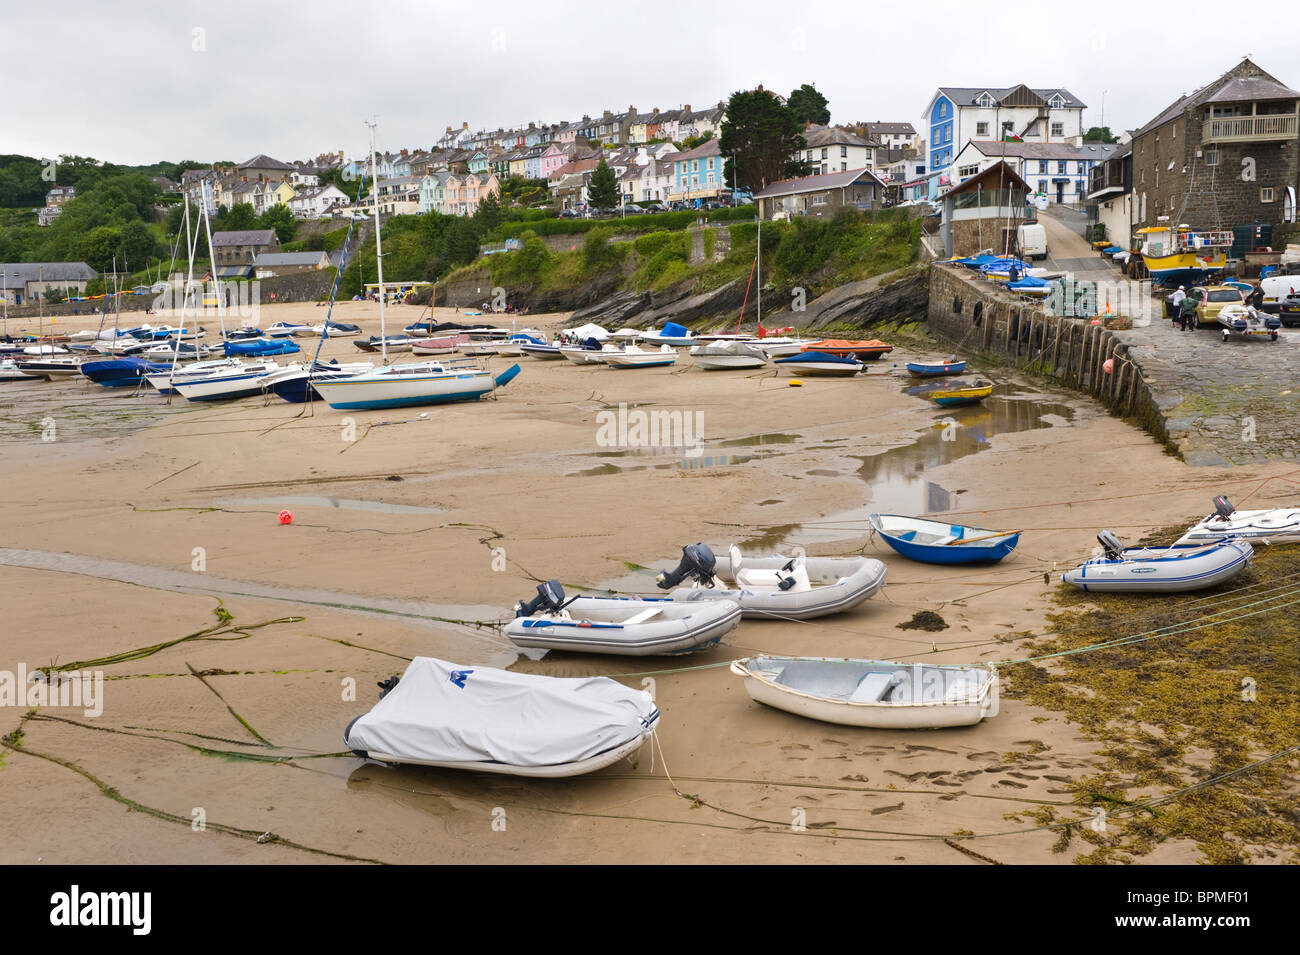 View over picturesque harbour in the Welsh seaside holiday resort of New Quay Ceredigion West Wales UK - Stock Image